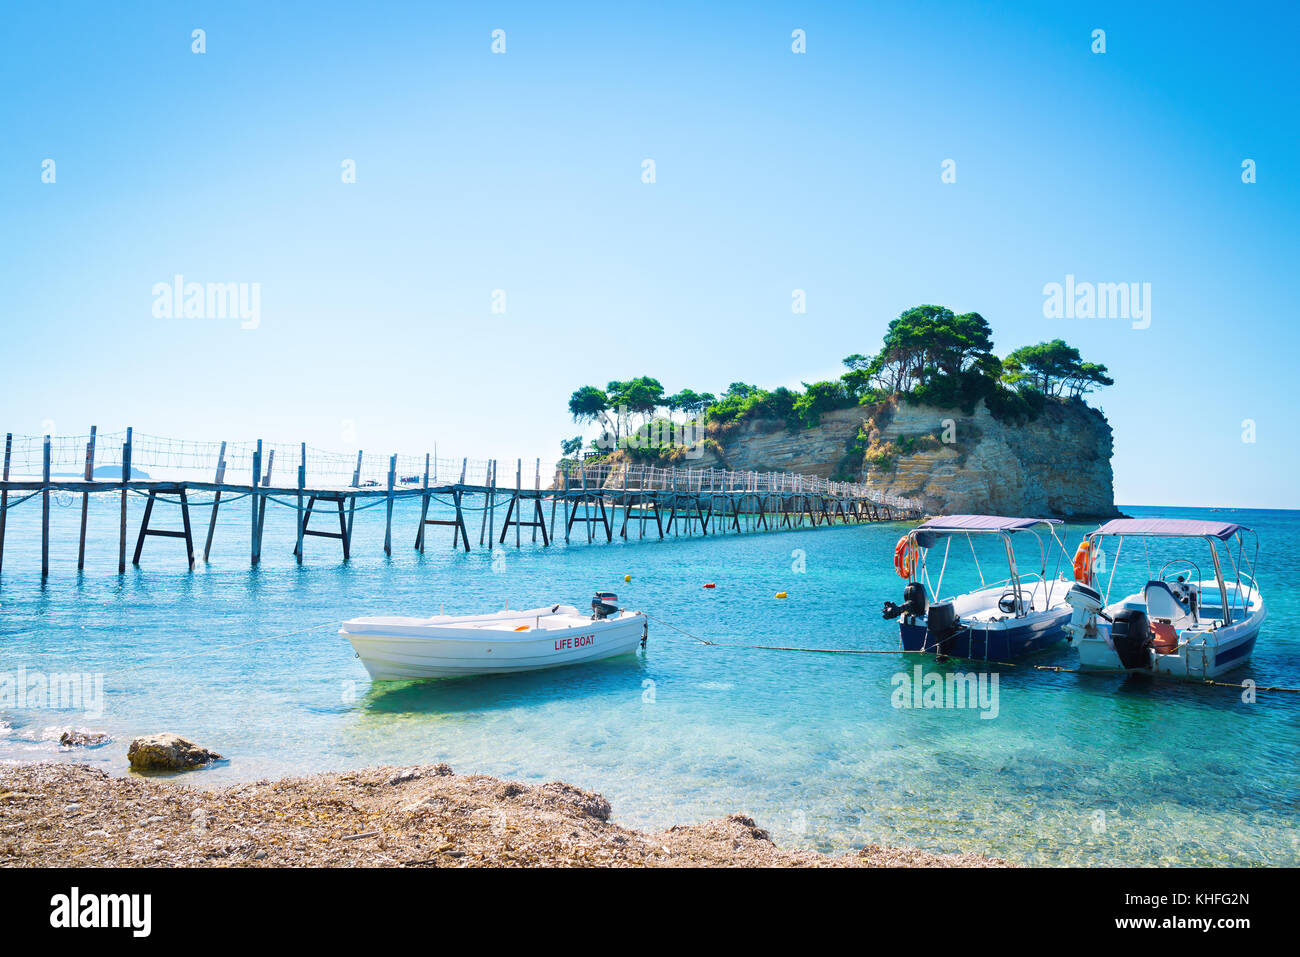 Amazing seascape with azure sea water and wooden bridge leading to the exotic island. Lifeboats picturesquely moored - Stock Image